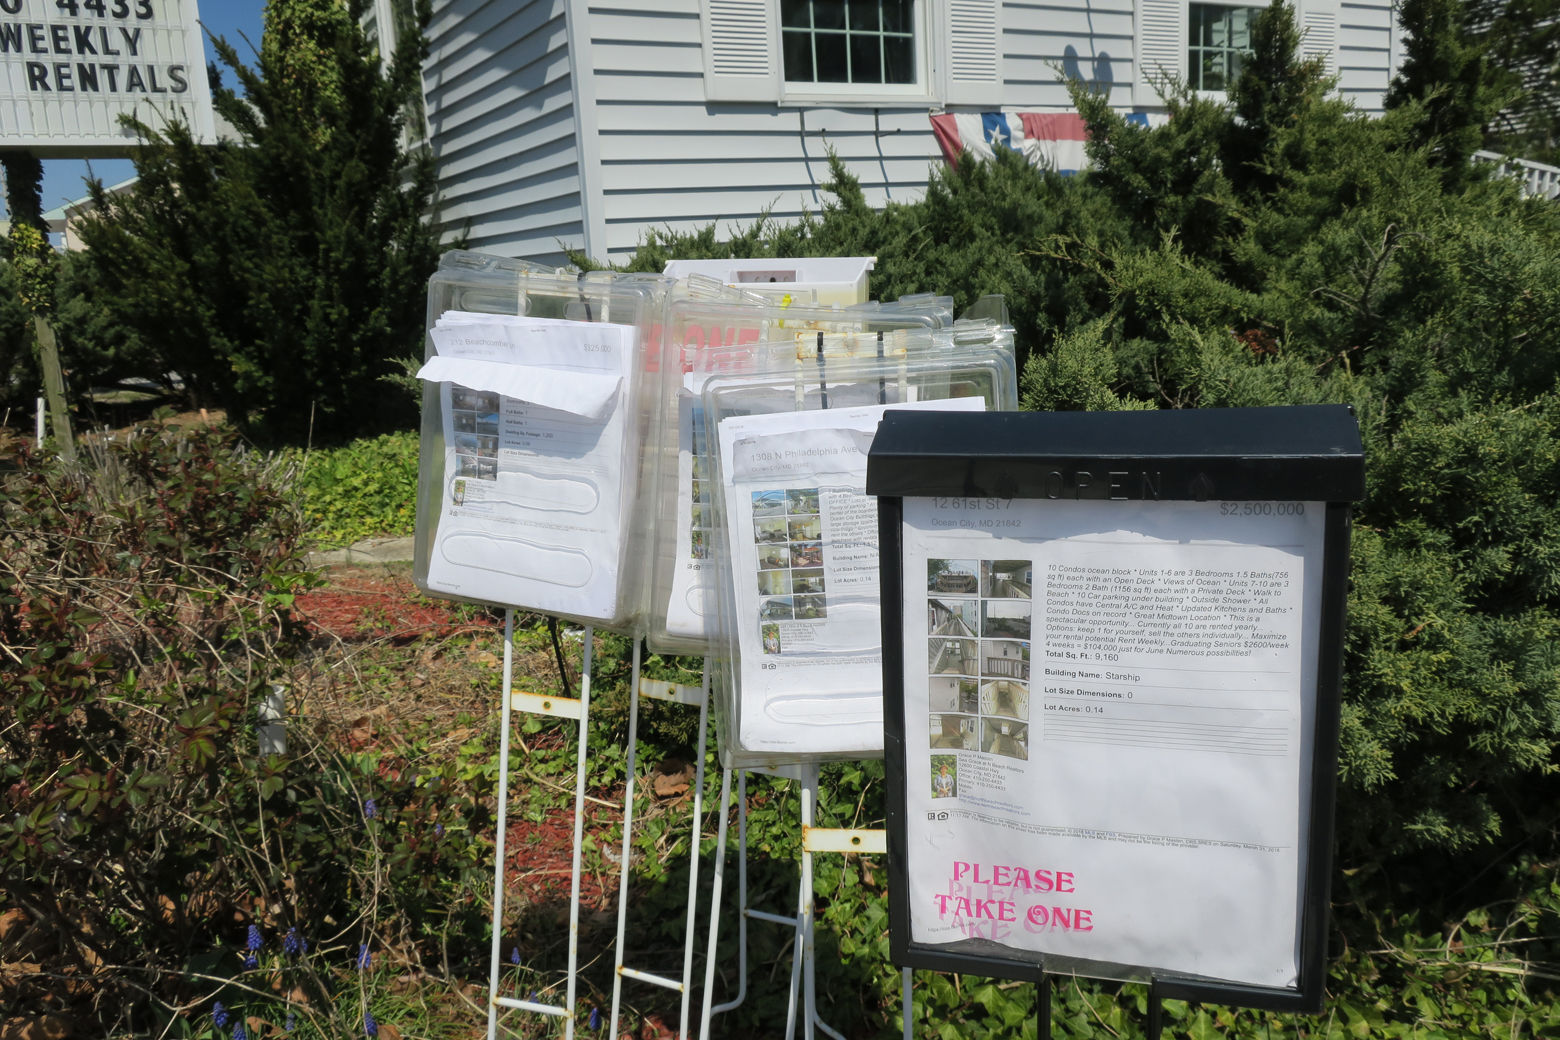 real estate flyers are seen